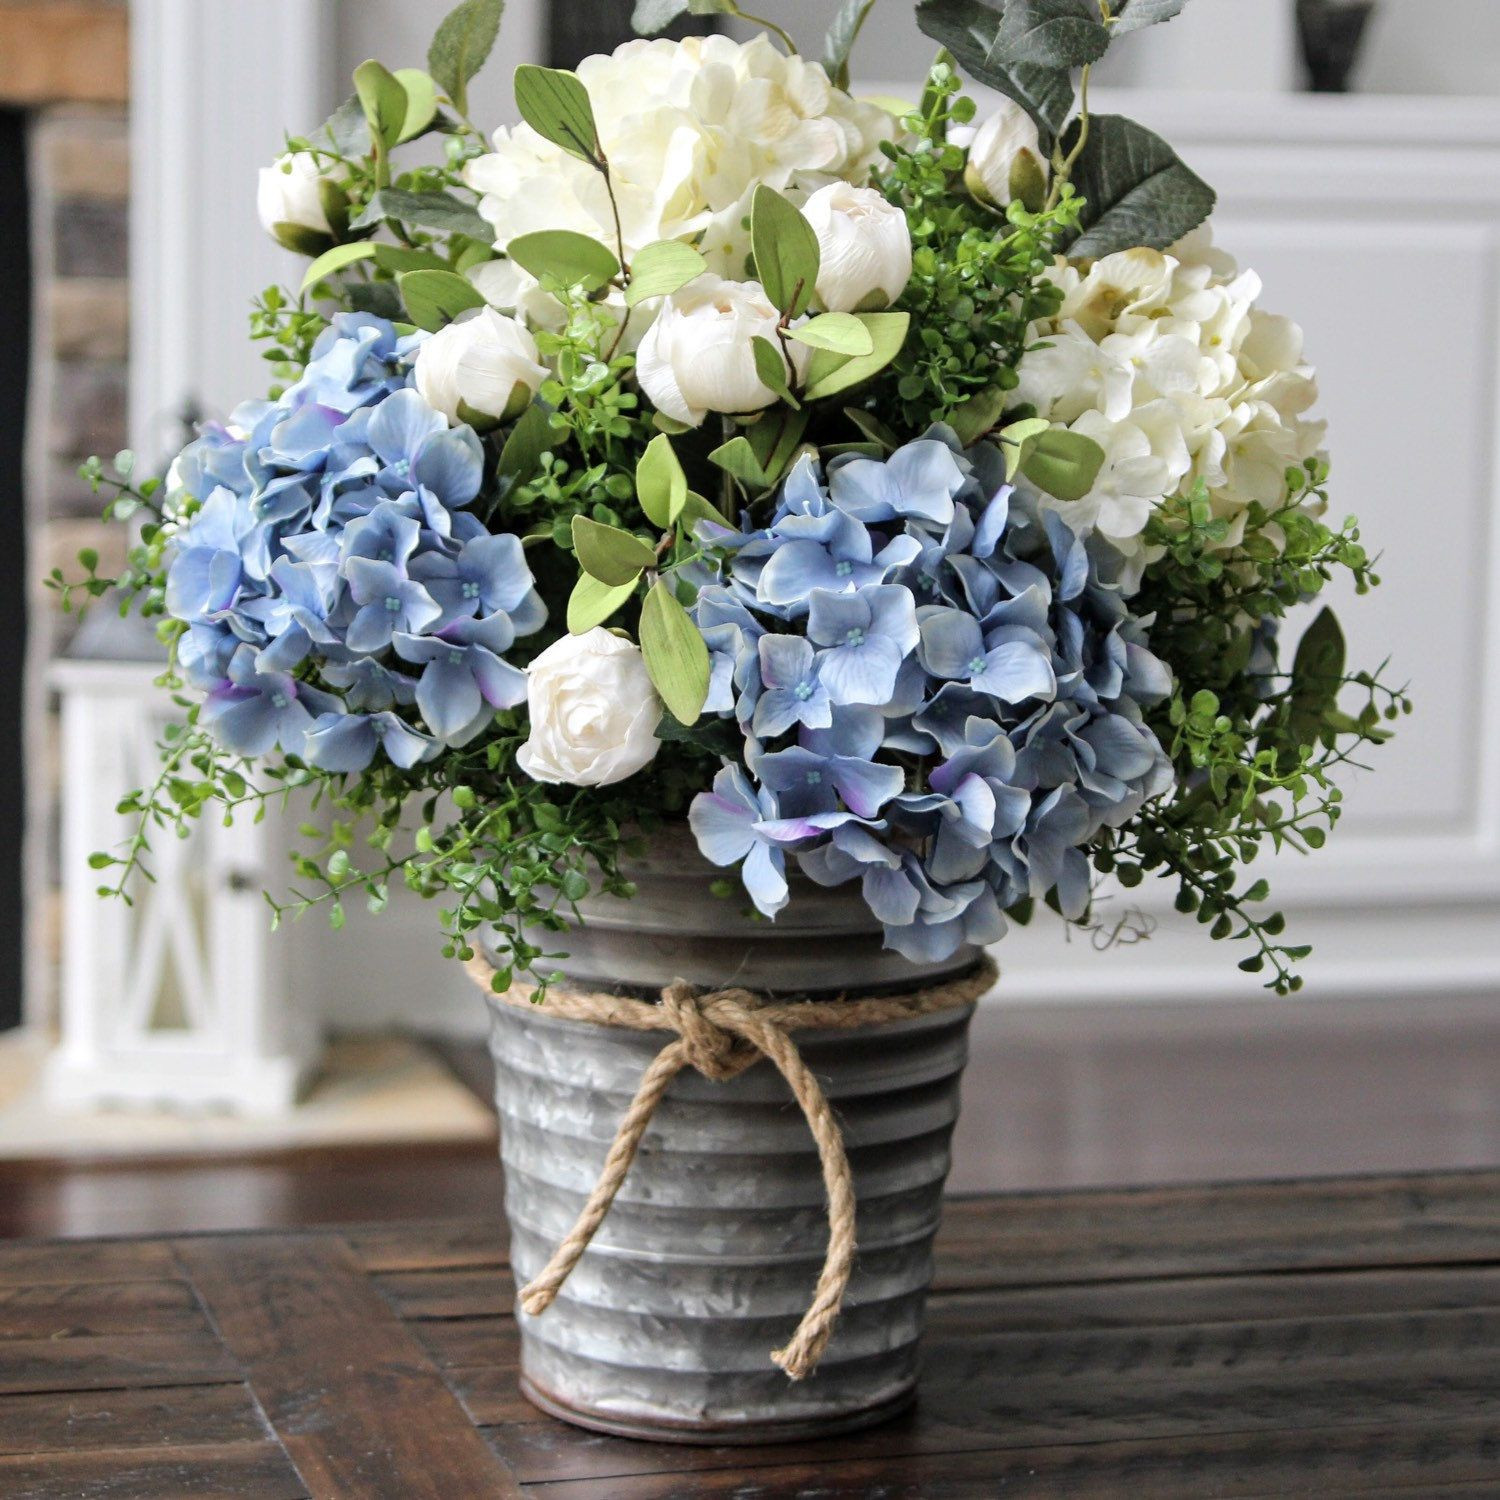 Stunning blue and creamy white hydrangea centerpiece